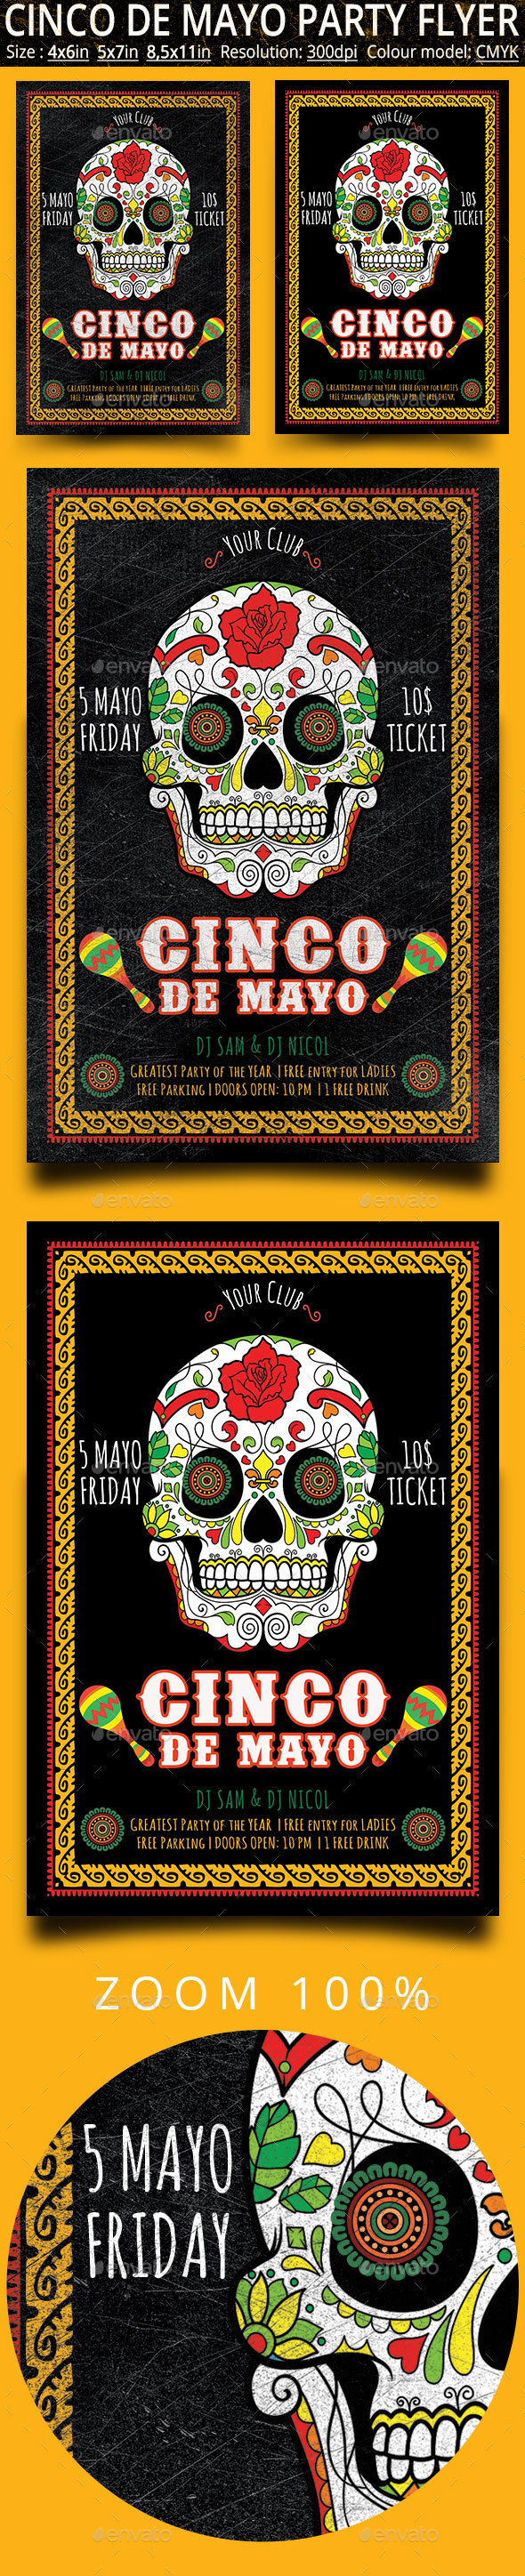 Cinco de Mayo Flyer And Poster - Events Flyers